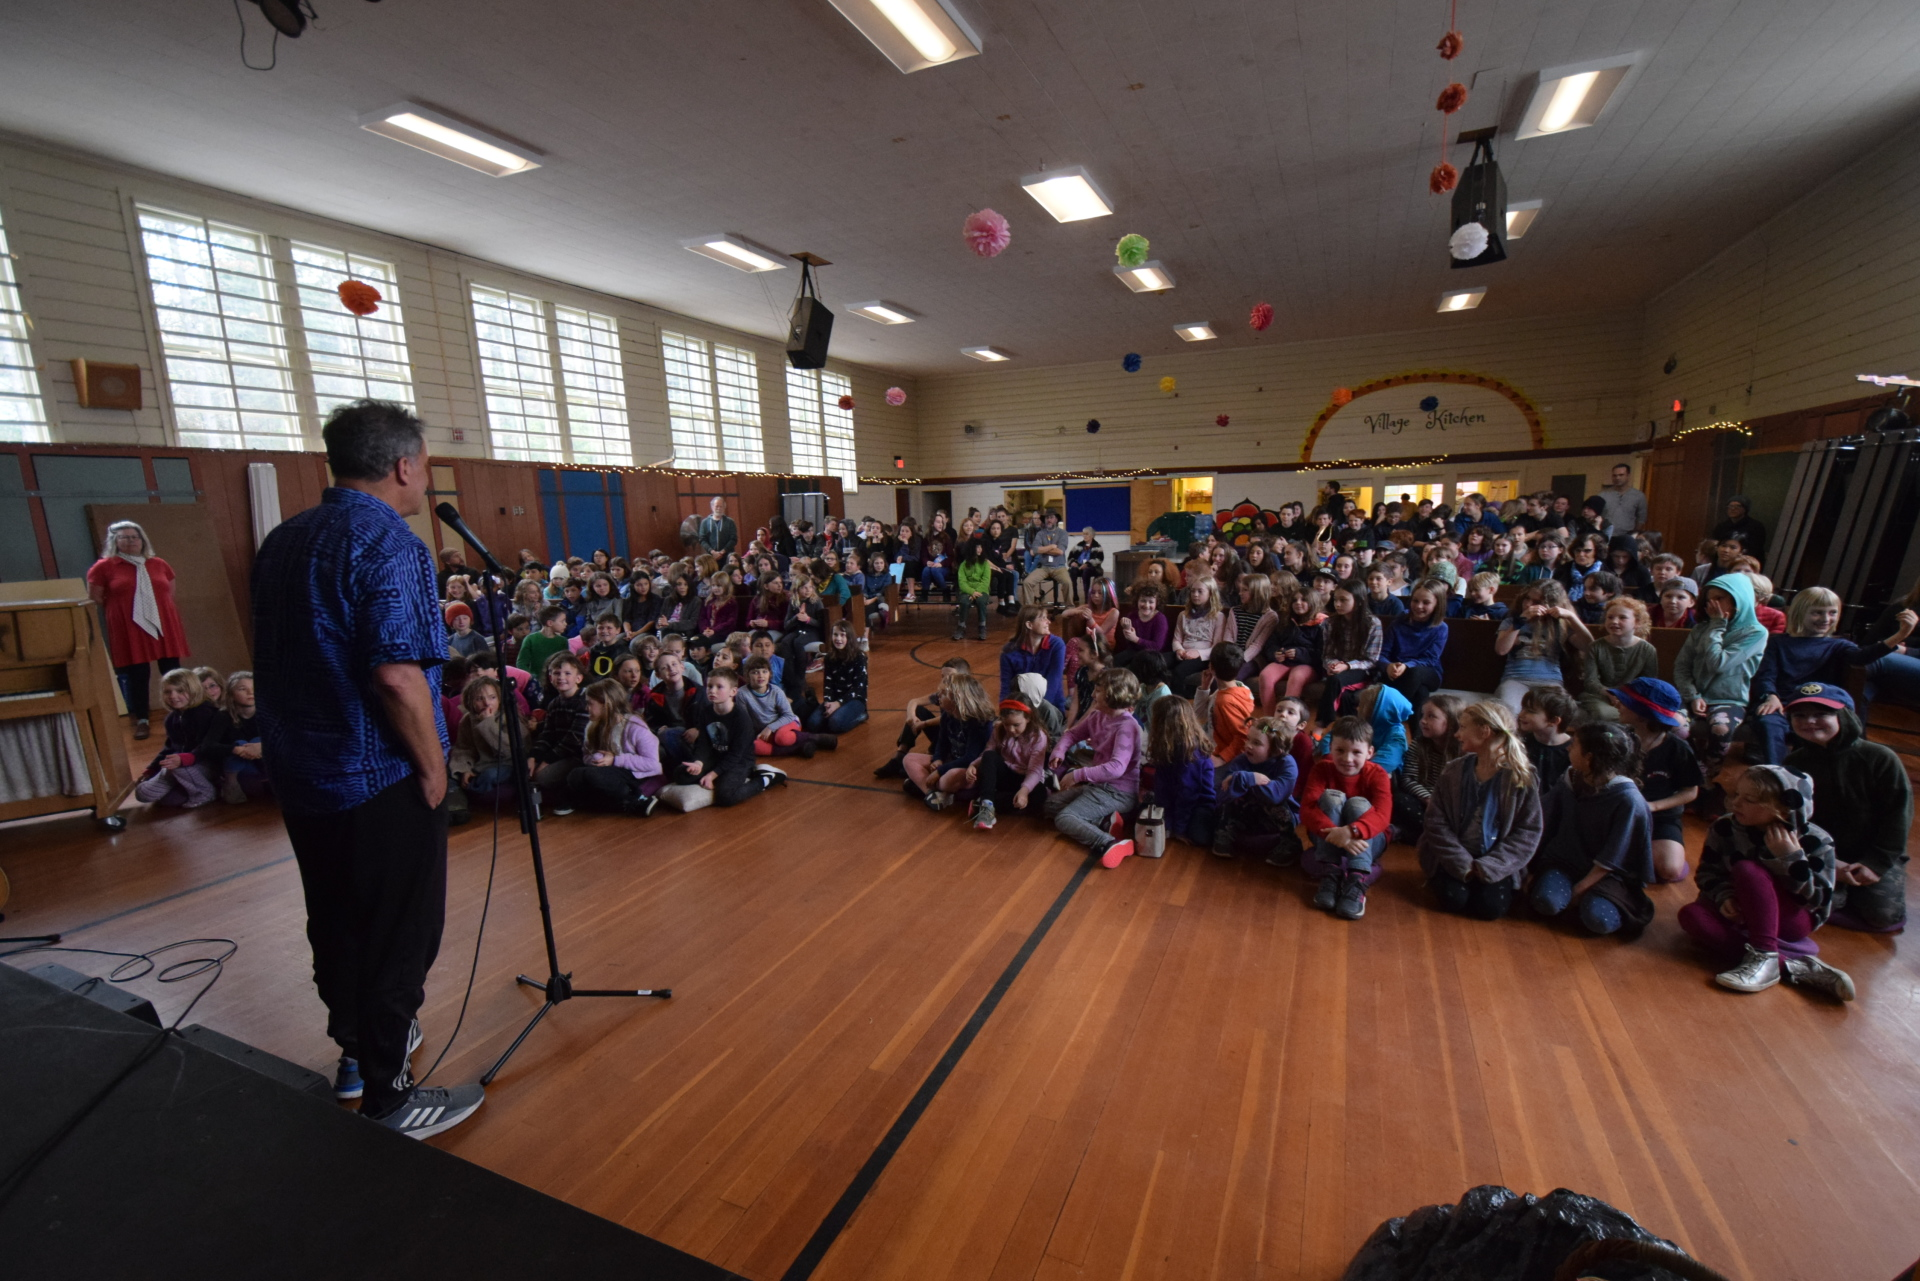 The school gathers for a Kindness Assembly [click image to see entire picture]